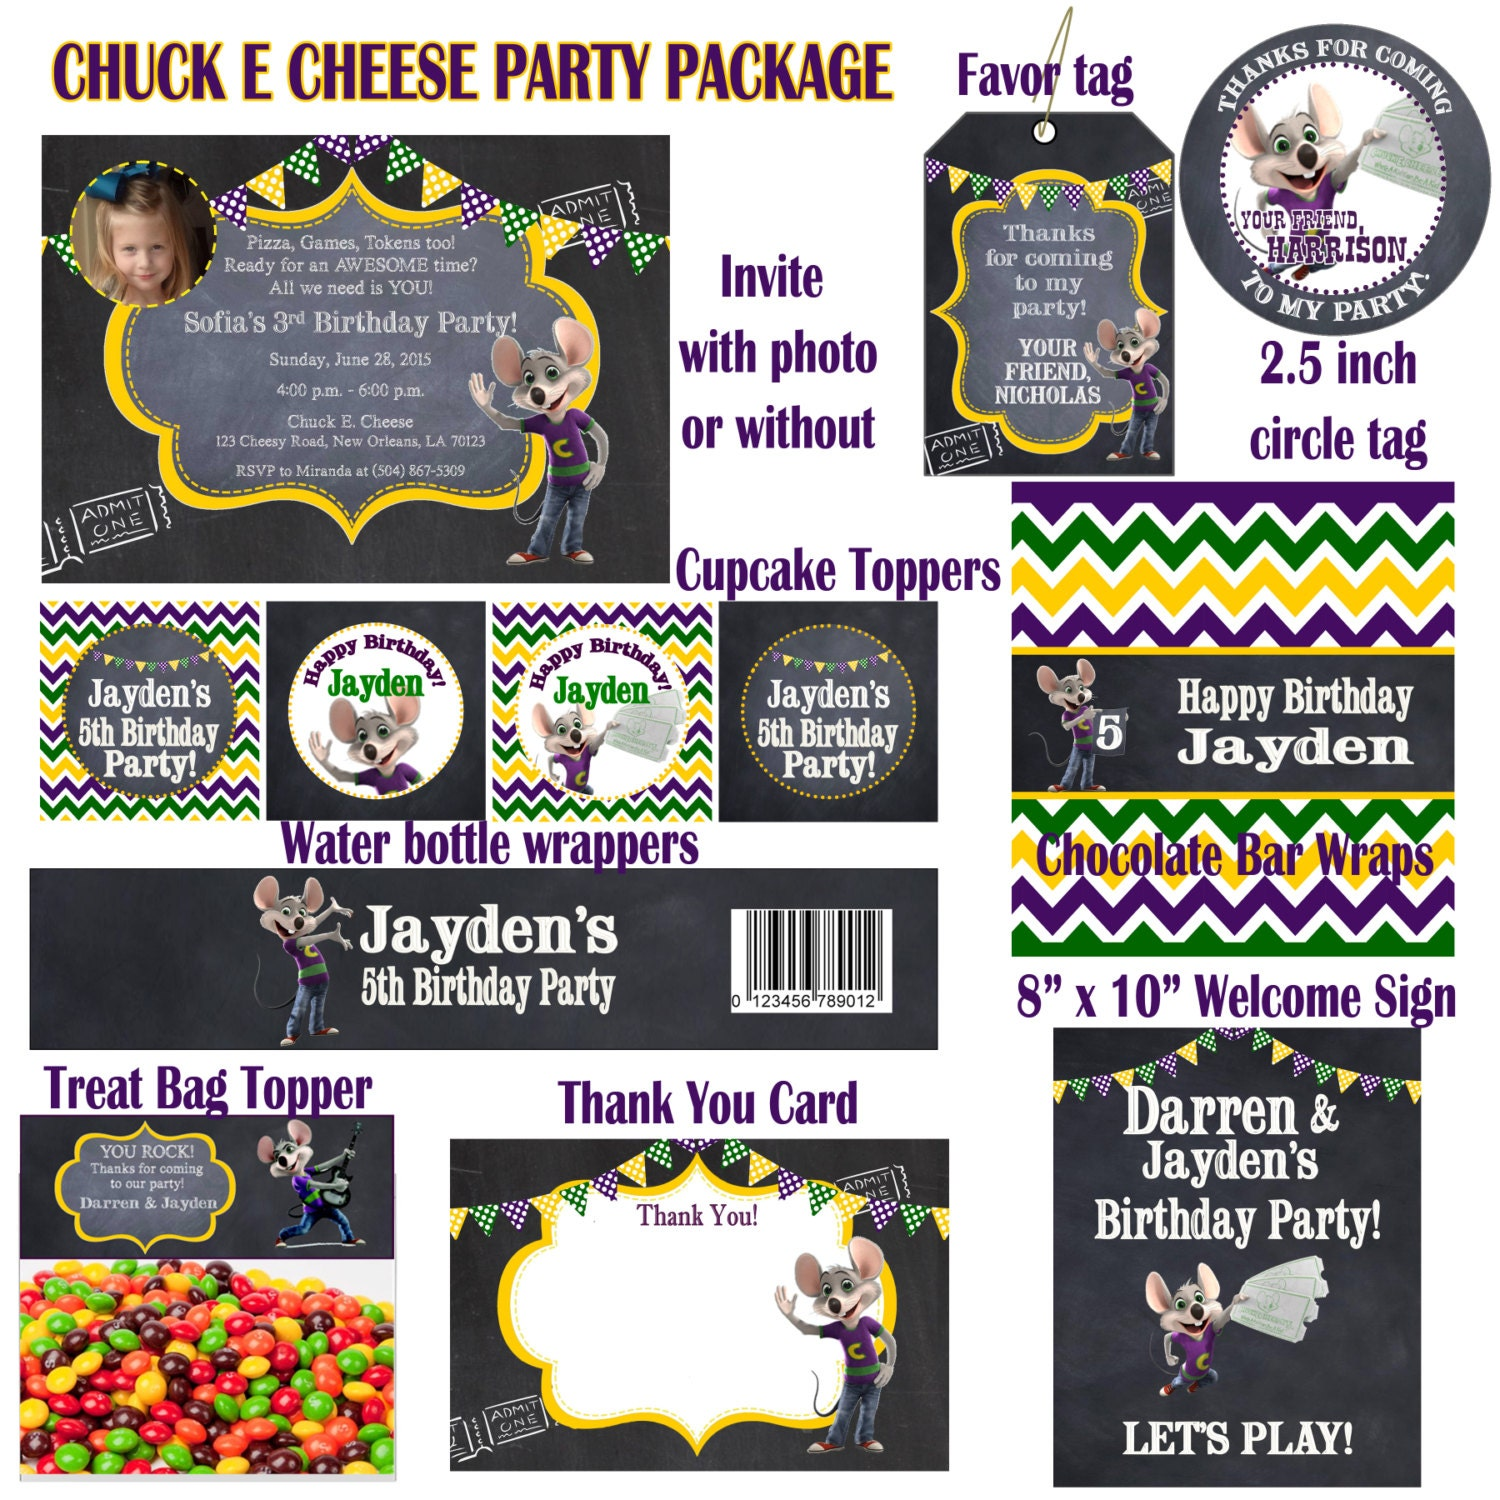 Book a Birthday Party at Chuck E Cheese's. Never miss another coupon. Be the first to learn about new coupons and deals for popular brands like Chuck E Cheese's with the Coupon Sherpa .